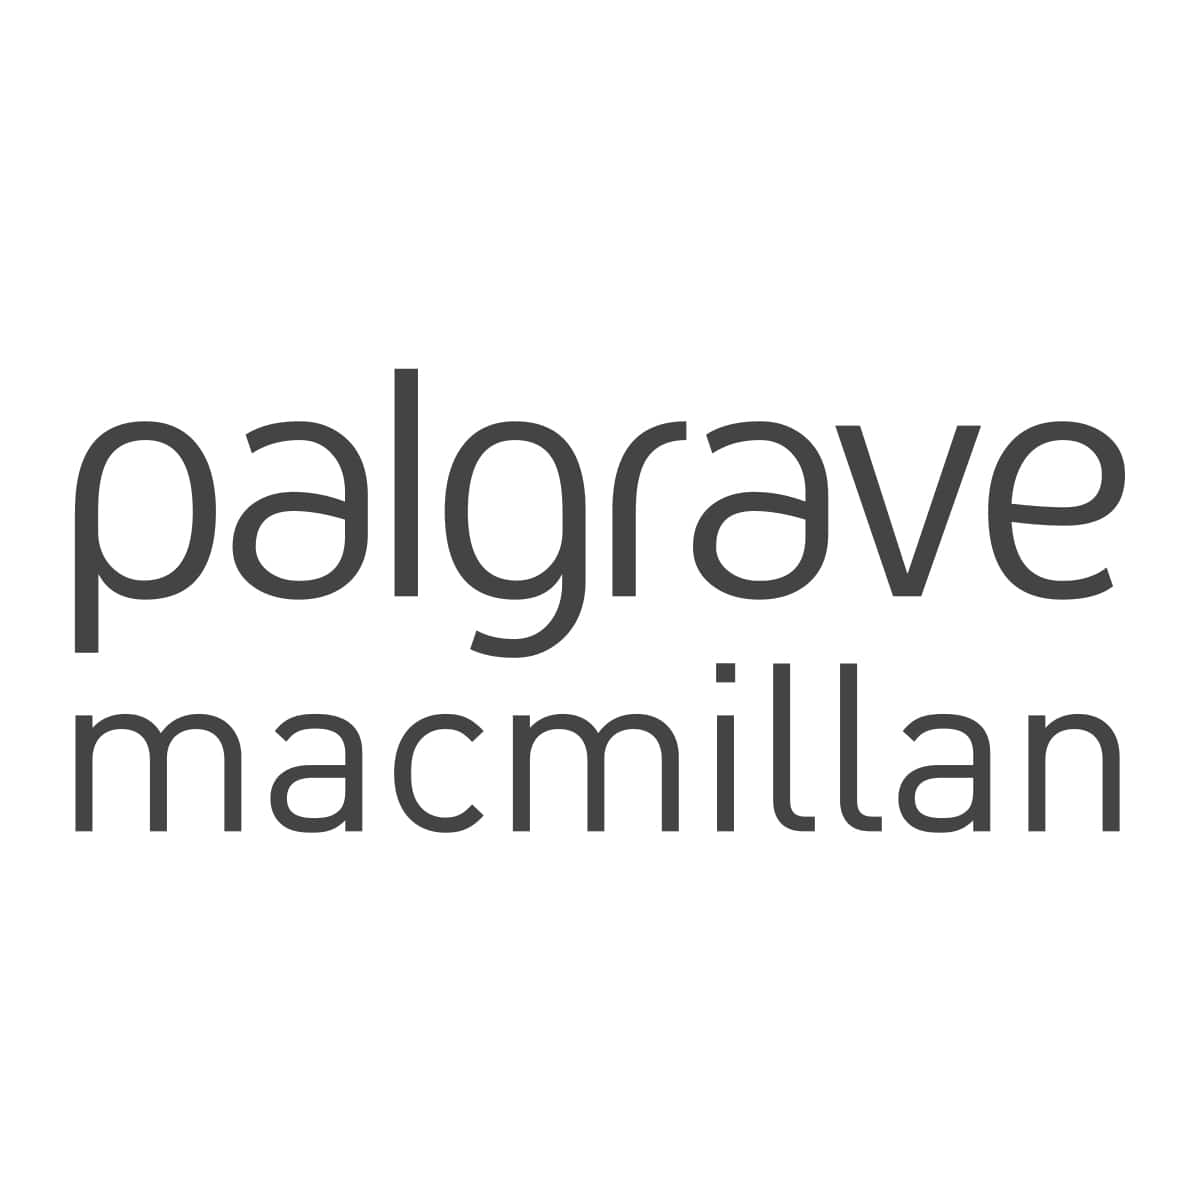 Palgrave Macmillan any book or eBook $9.99 with free shipping